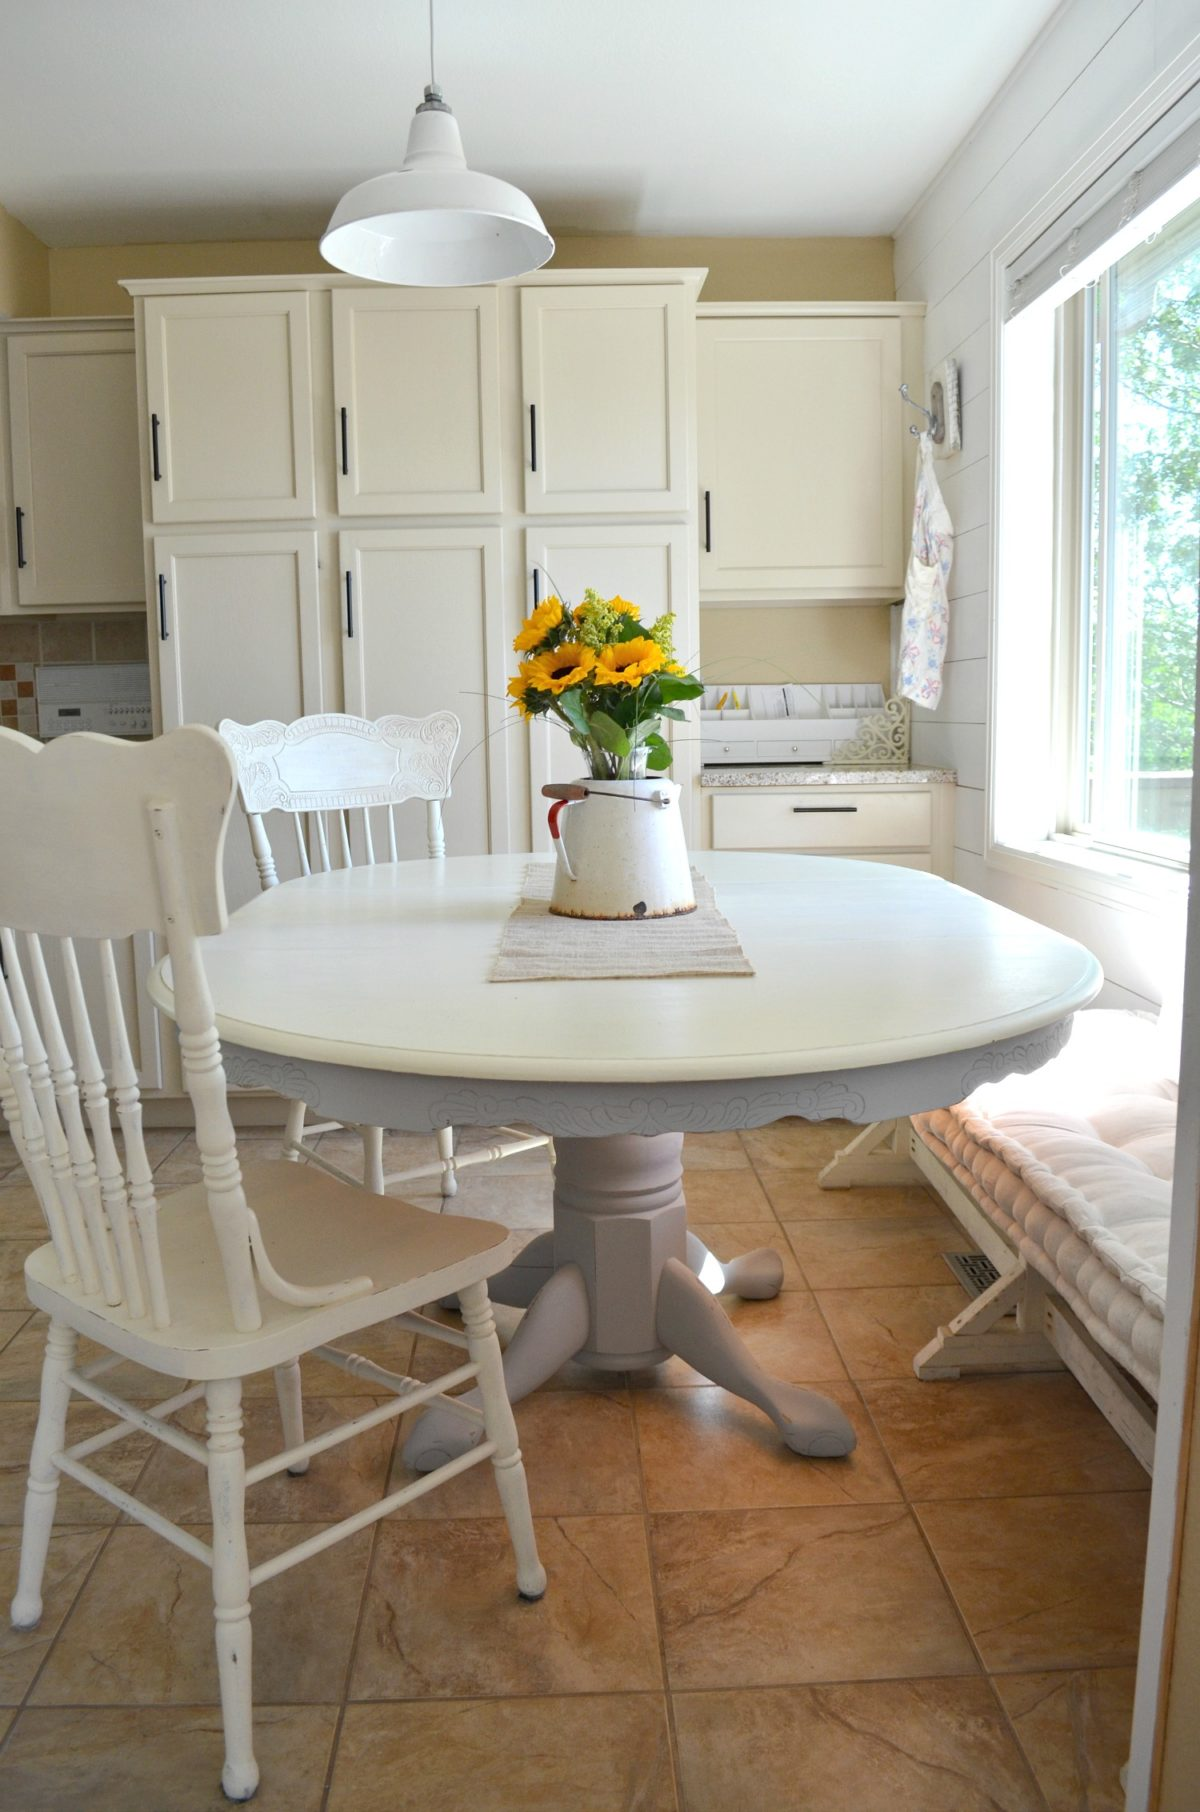 Round Kitchen Table And Chairs For